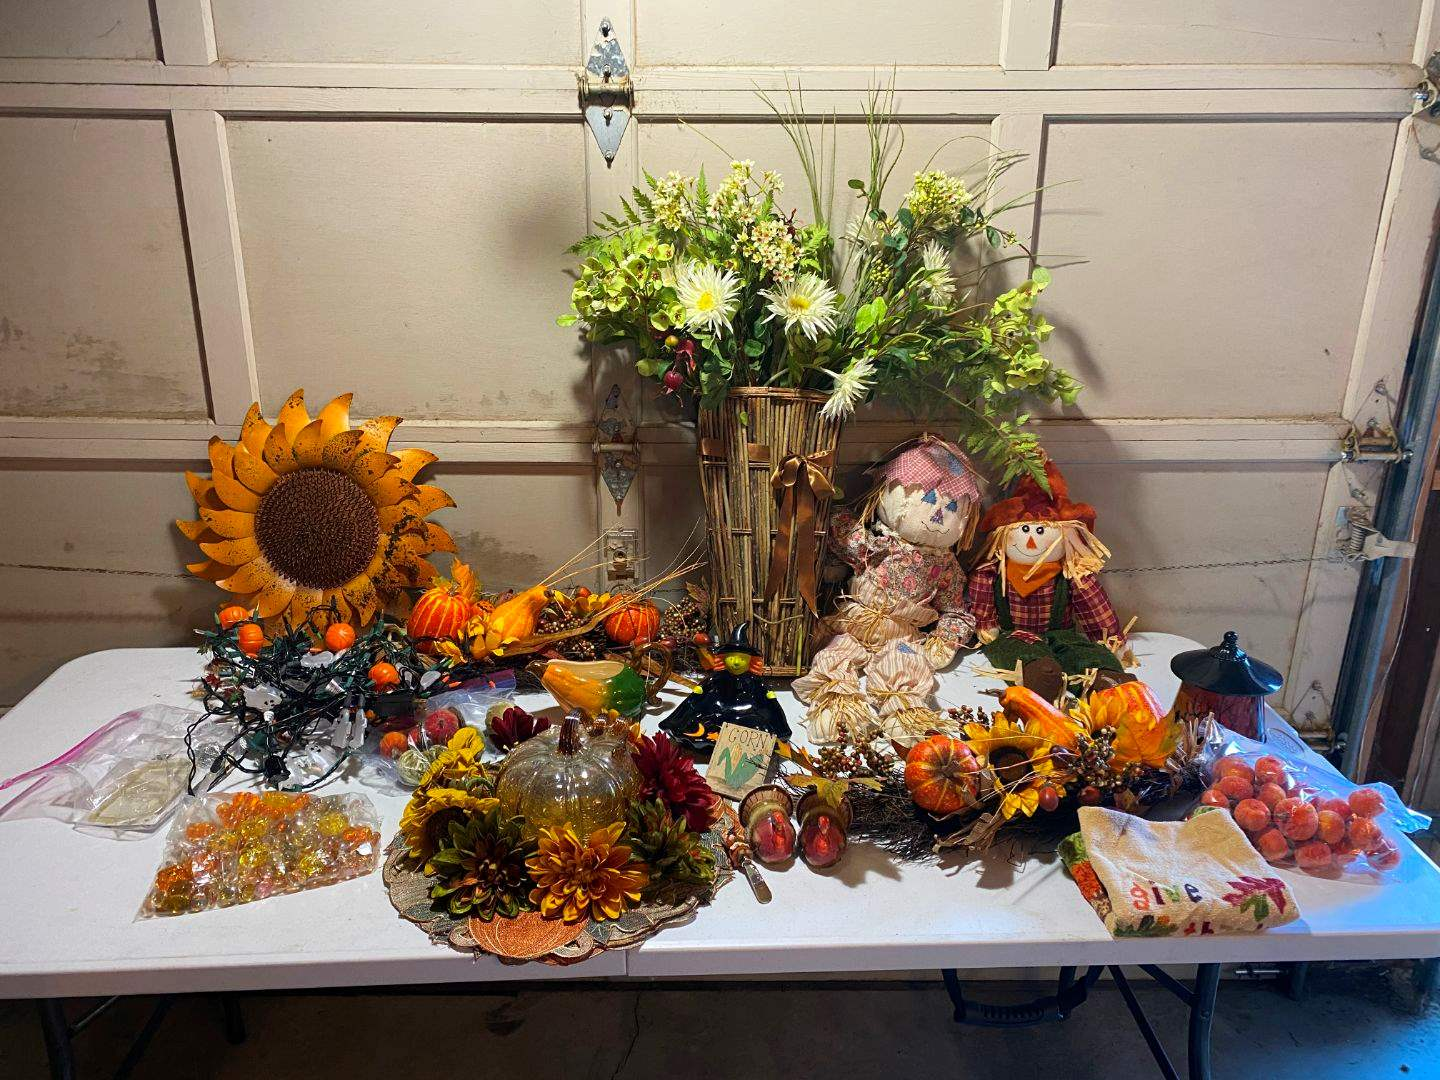 Lot # 205 - Fall Harvest & Halloween: Glass Pumpkin, Leaf & Pumpkin Decor, Lights, Salt & Pepper Shakers & More. (main image)